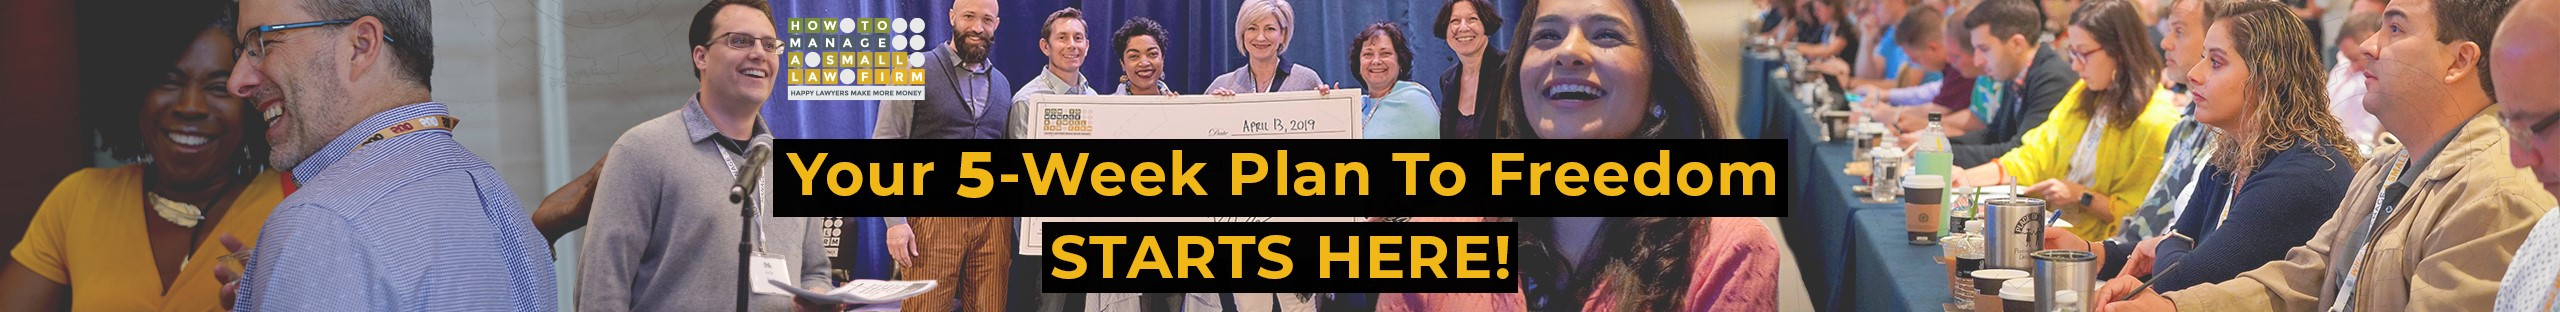 Your 5-week plan to freedom starts here